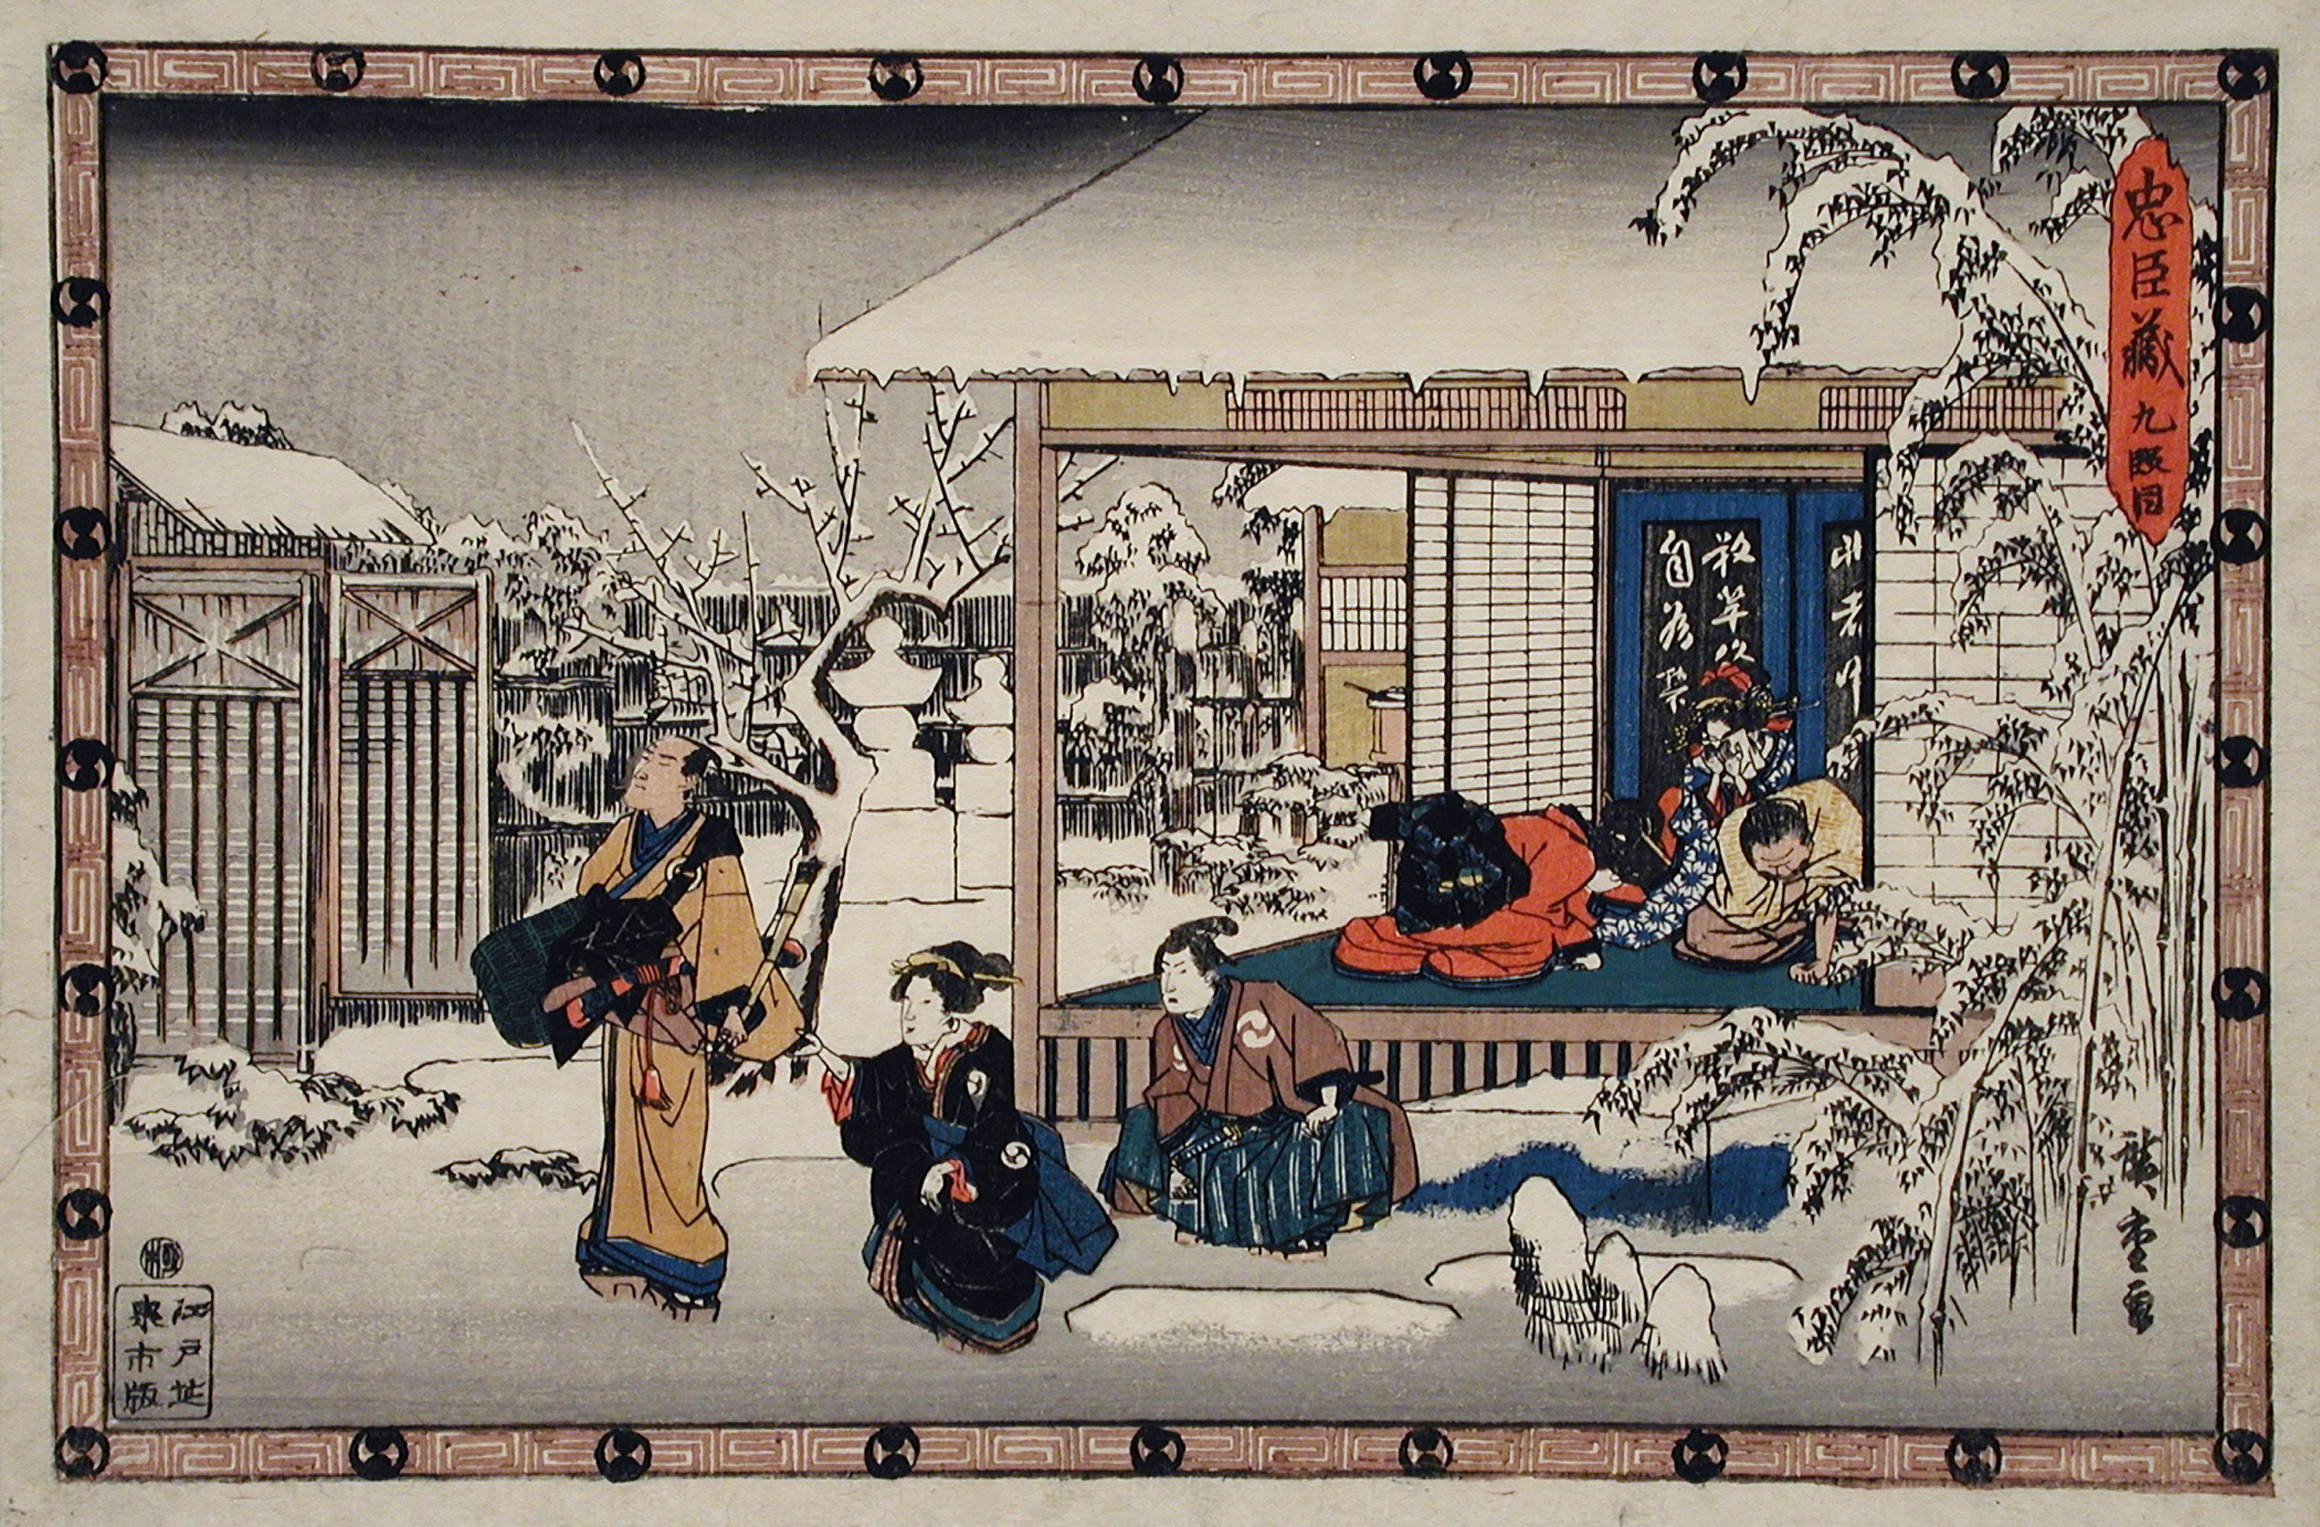 Act IX: Honzō's Suicide in Front of His Family; Yuranosuke Dressed as a Komusō Making Preparations to Attack Moronao